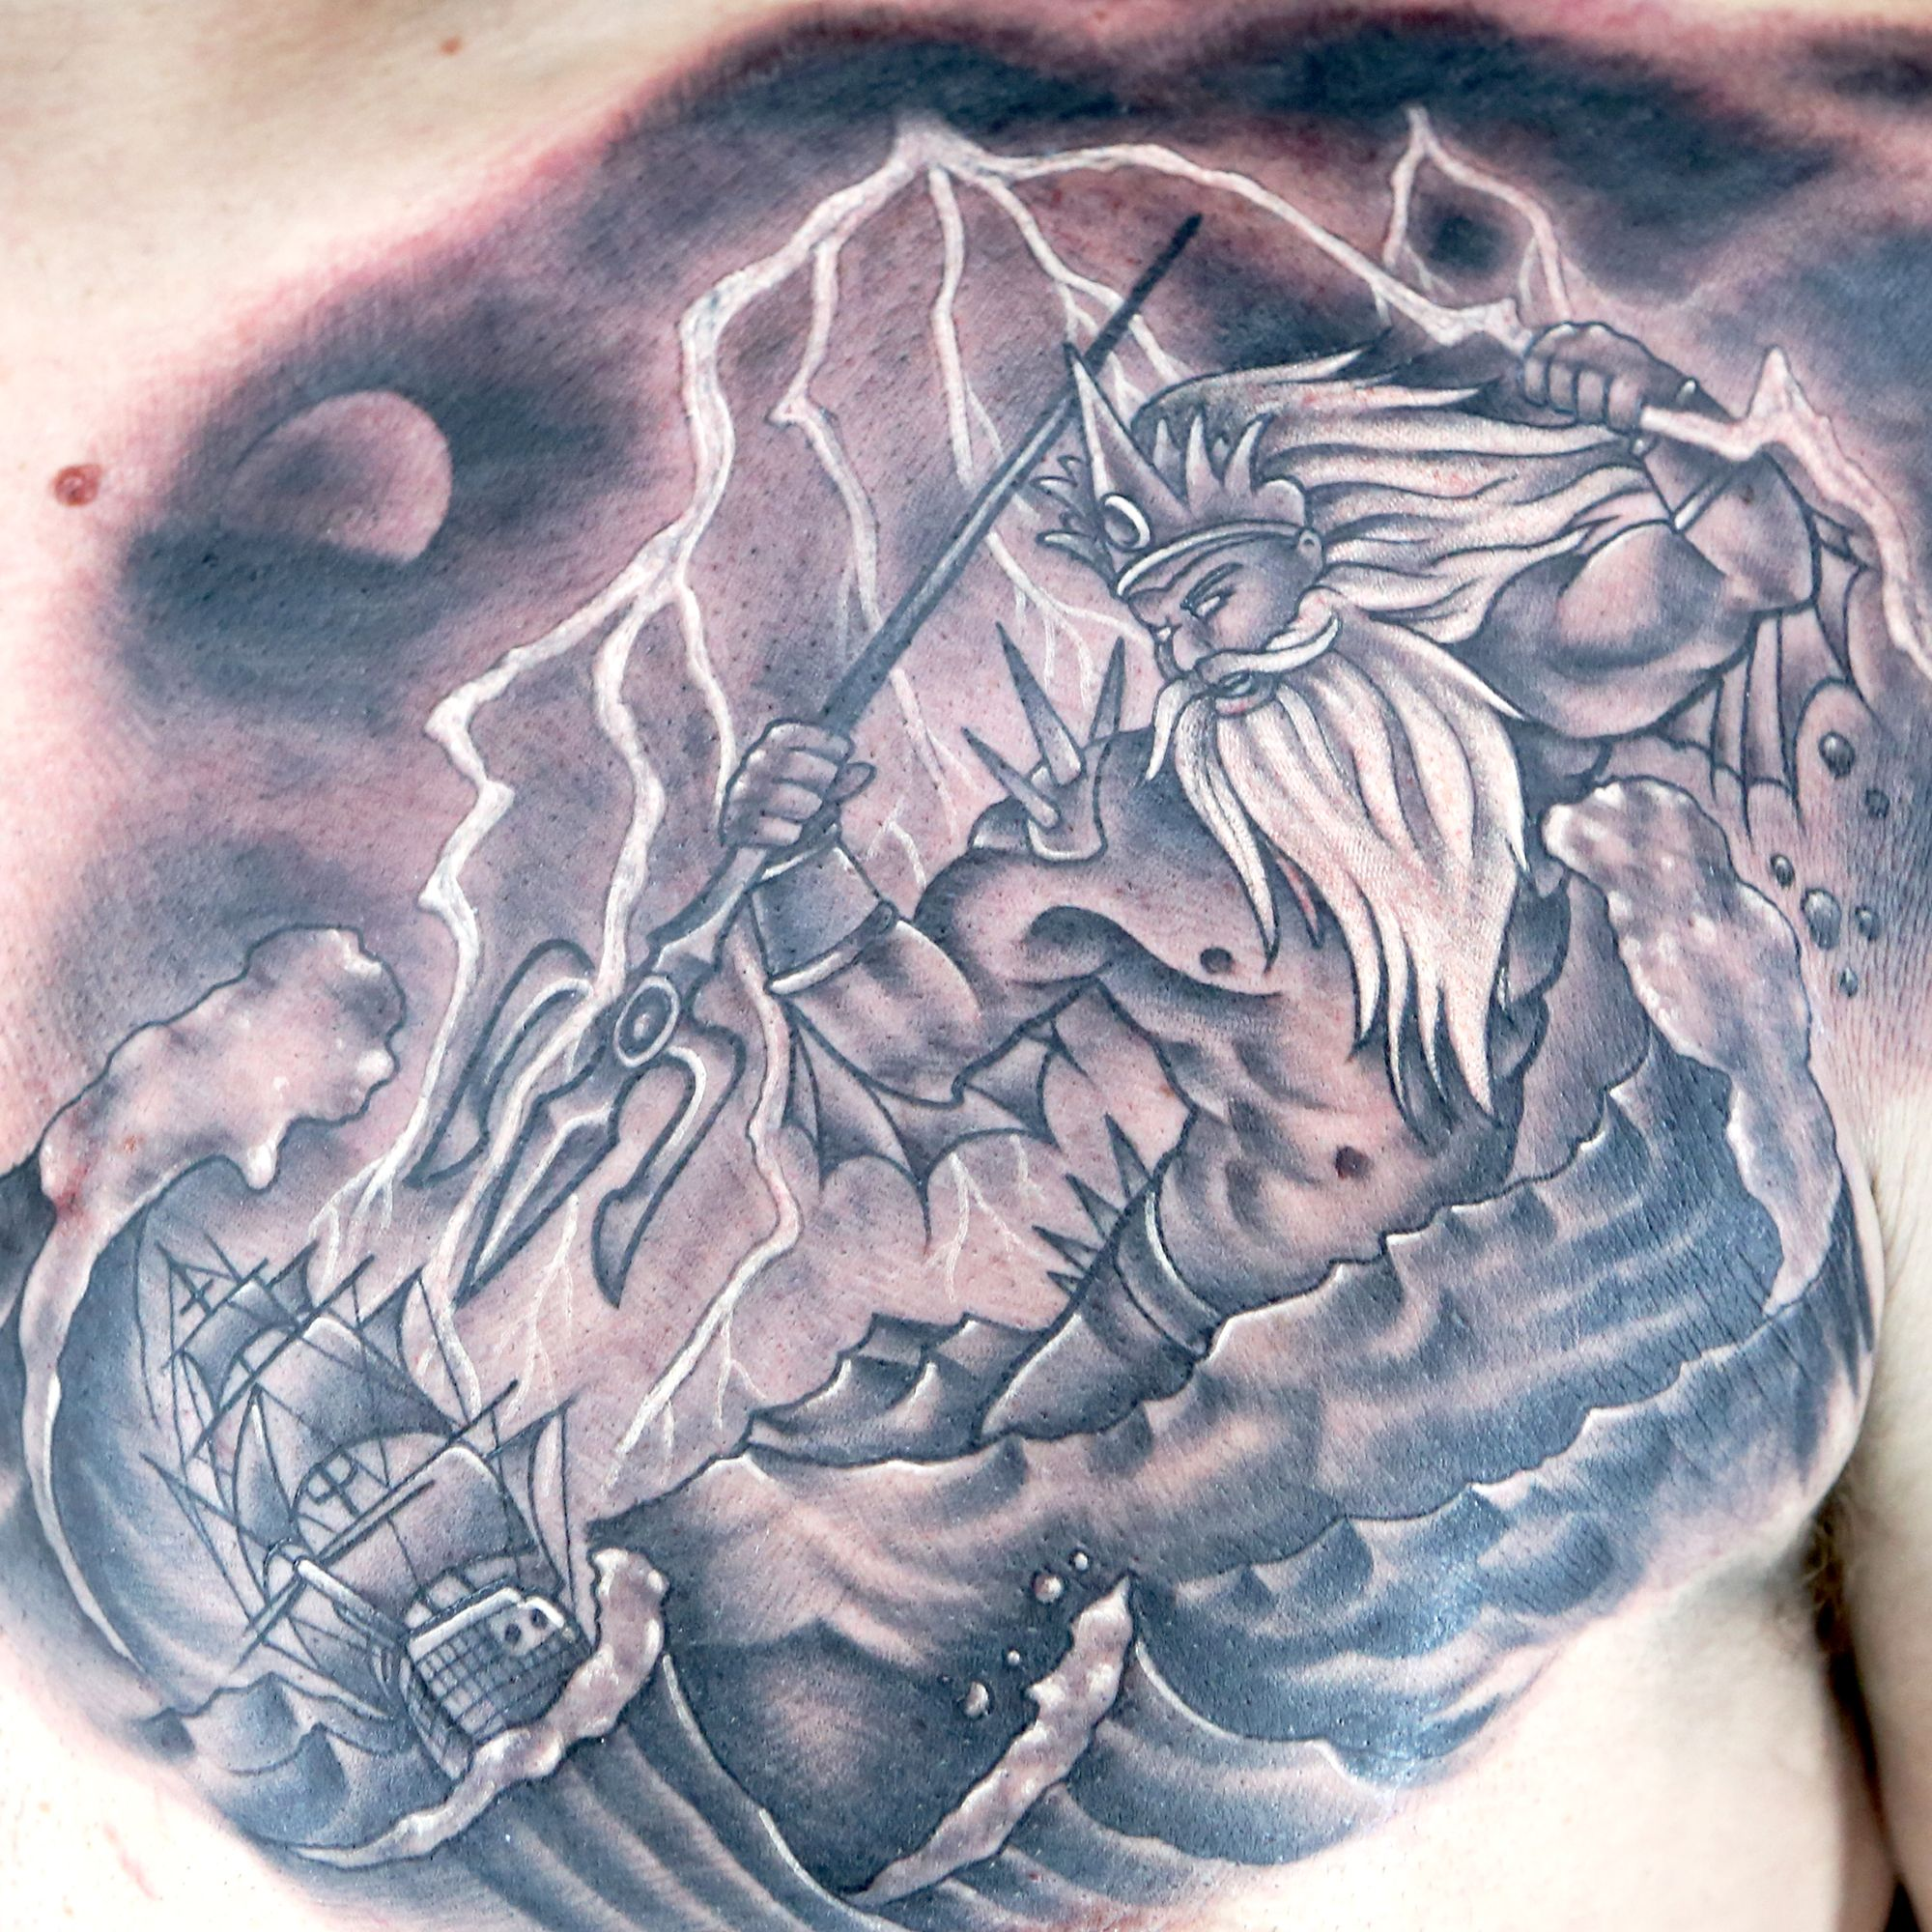 Airplane tattoo designs bodysstyle - Check Out This High Res Photo Of Tyler Nolan S Tattoo From The Neptune Episode Of Ink